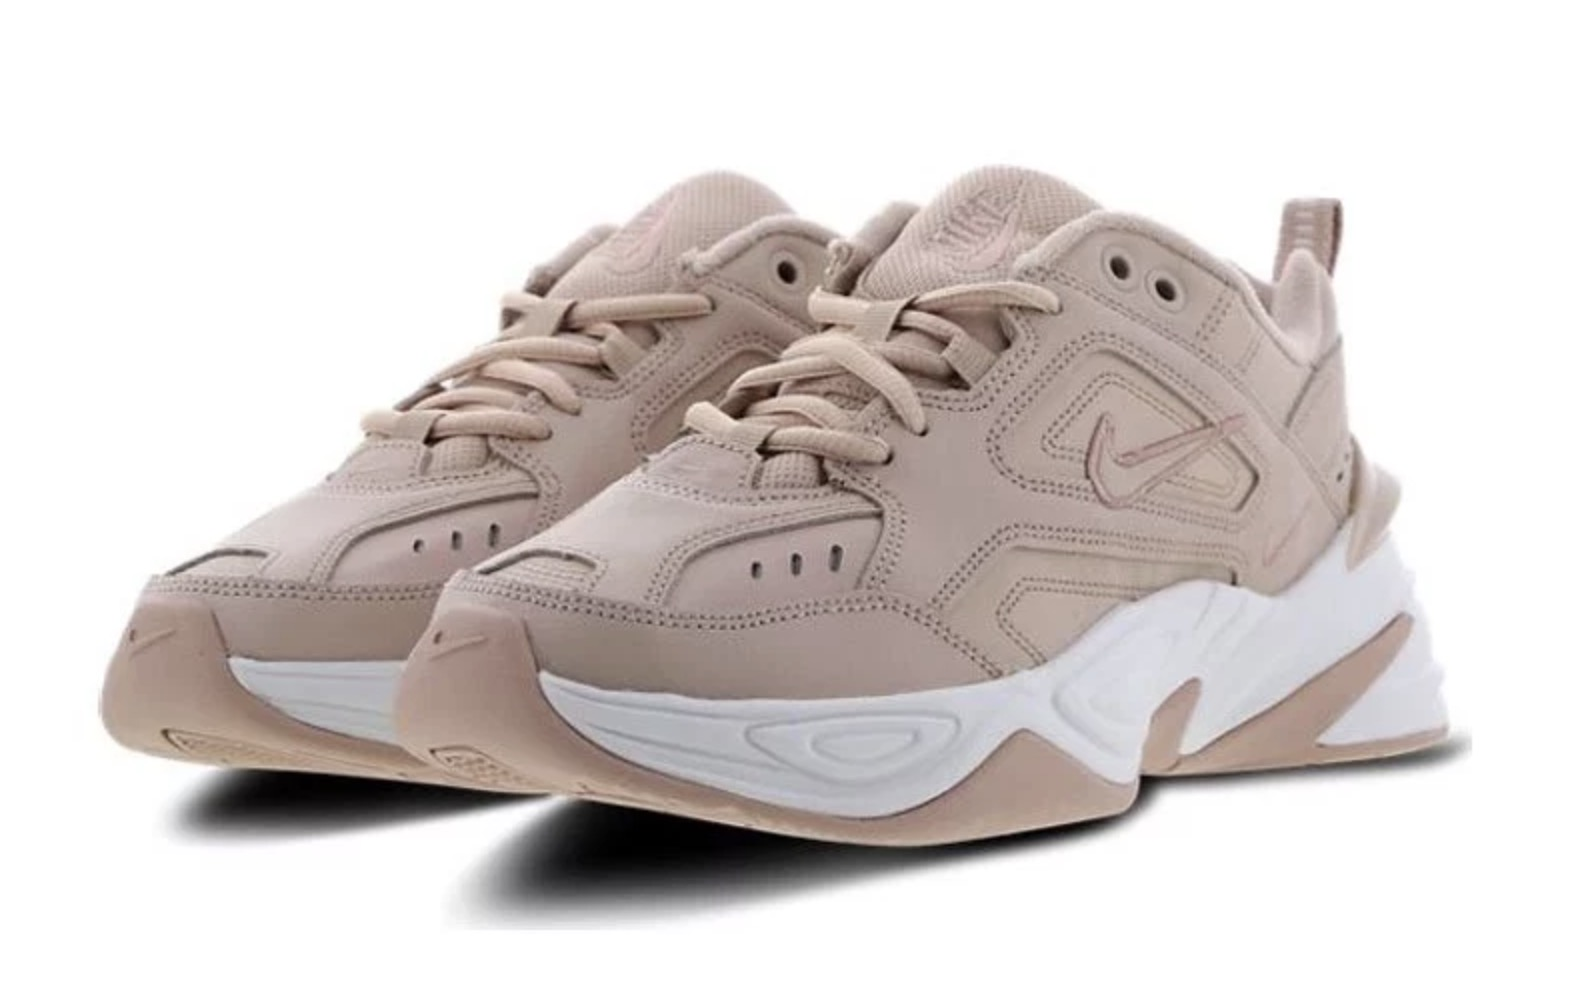 Three New Autumn-Ready Hues Take Over The Nike M2k Tekno ...